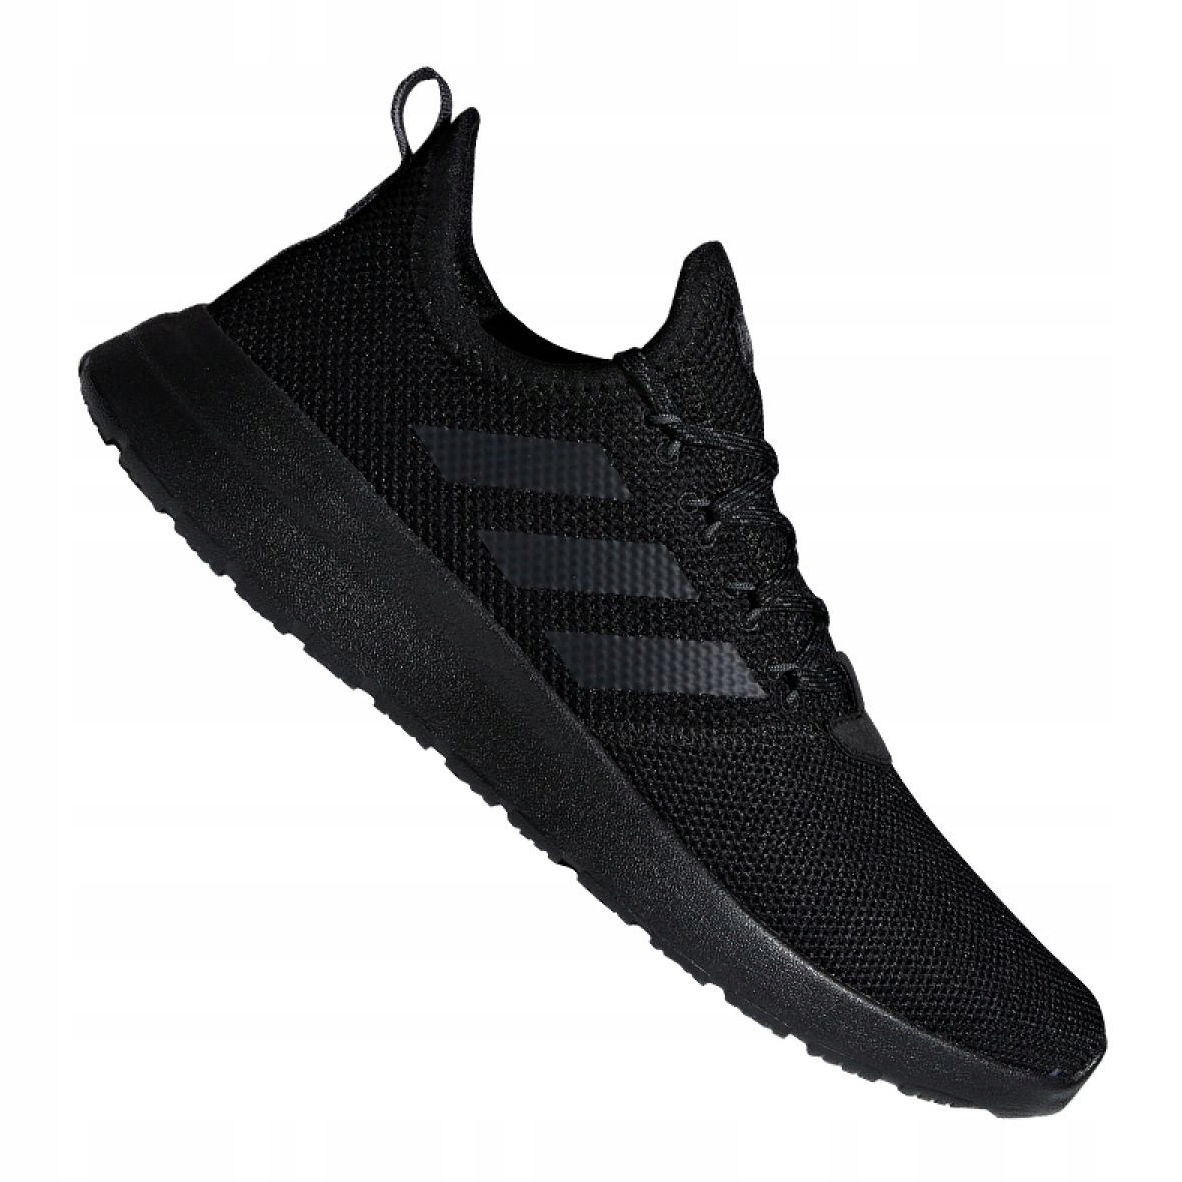 Details about Running shoes adidas Cloudfoam Lite Racer Reborn M F36642  black